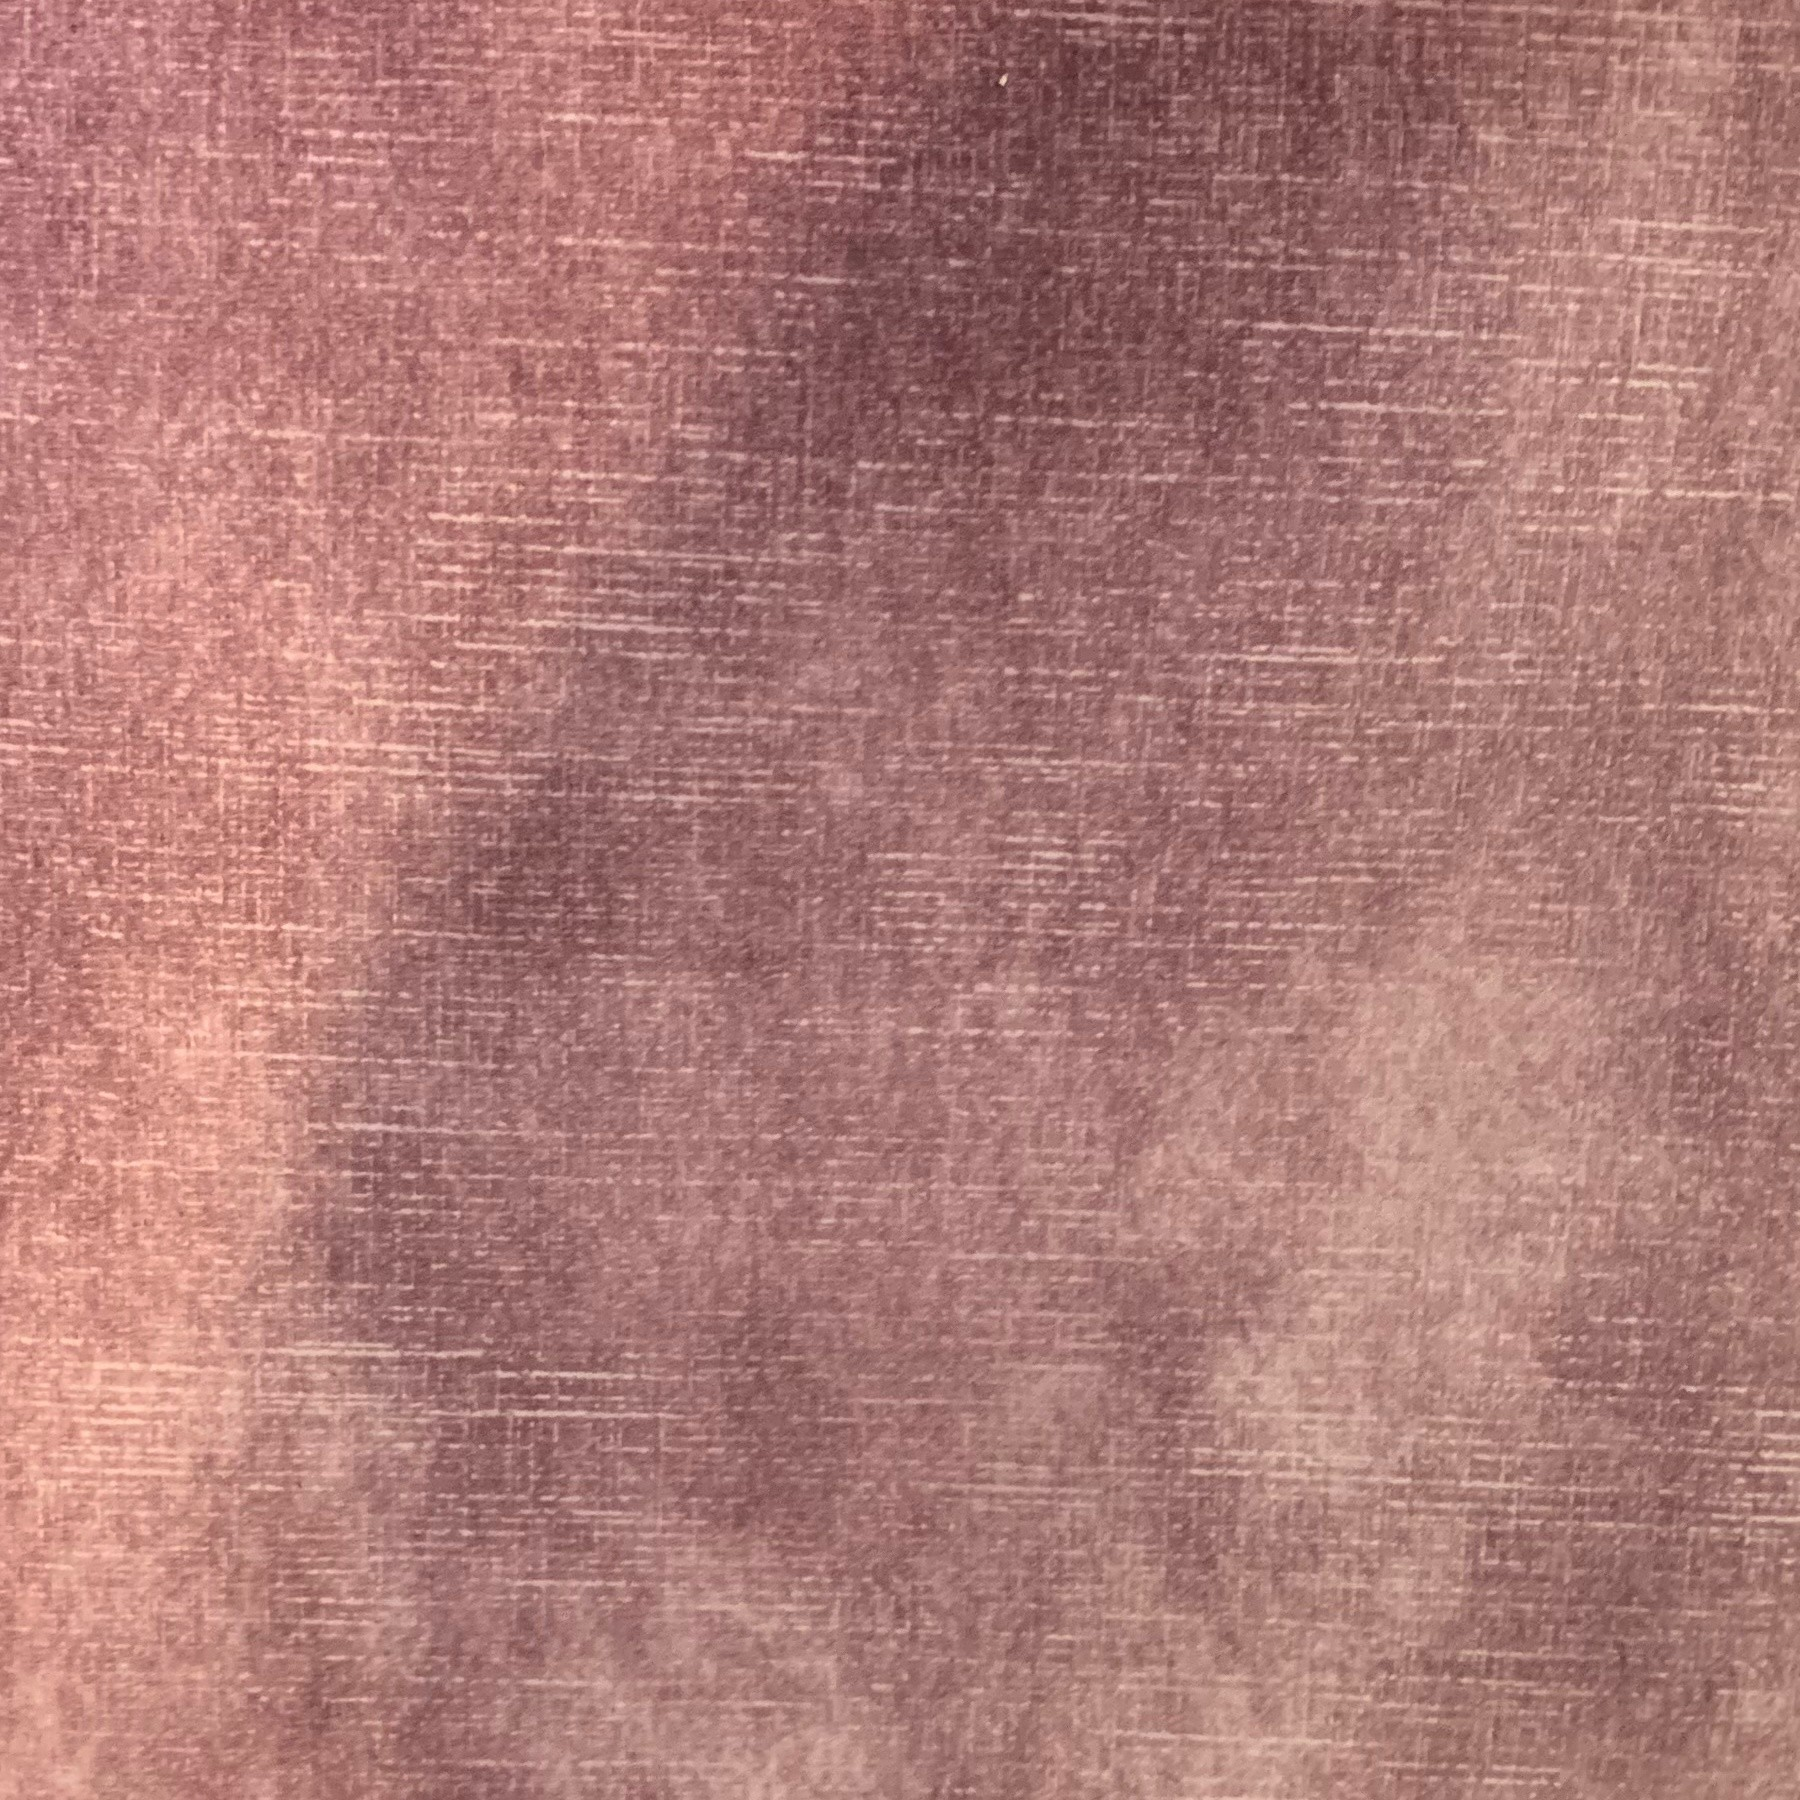 Dusk Jewel Velvet Plain